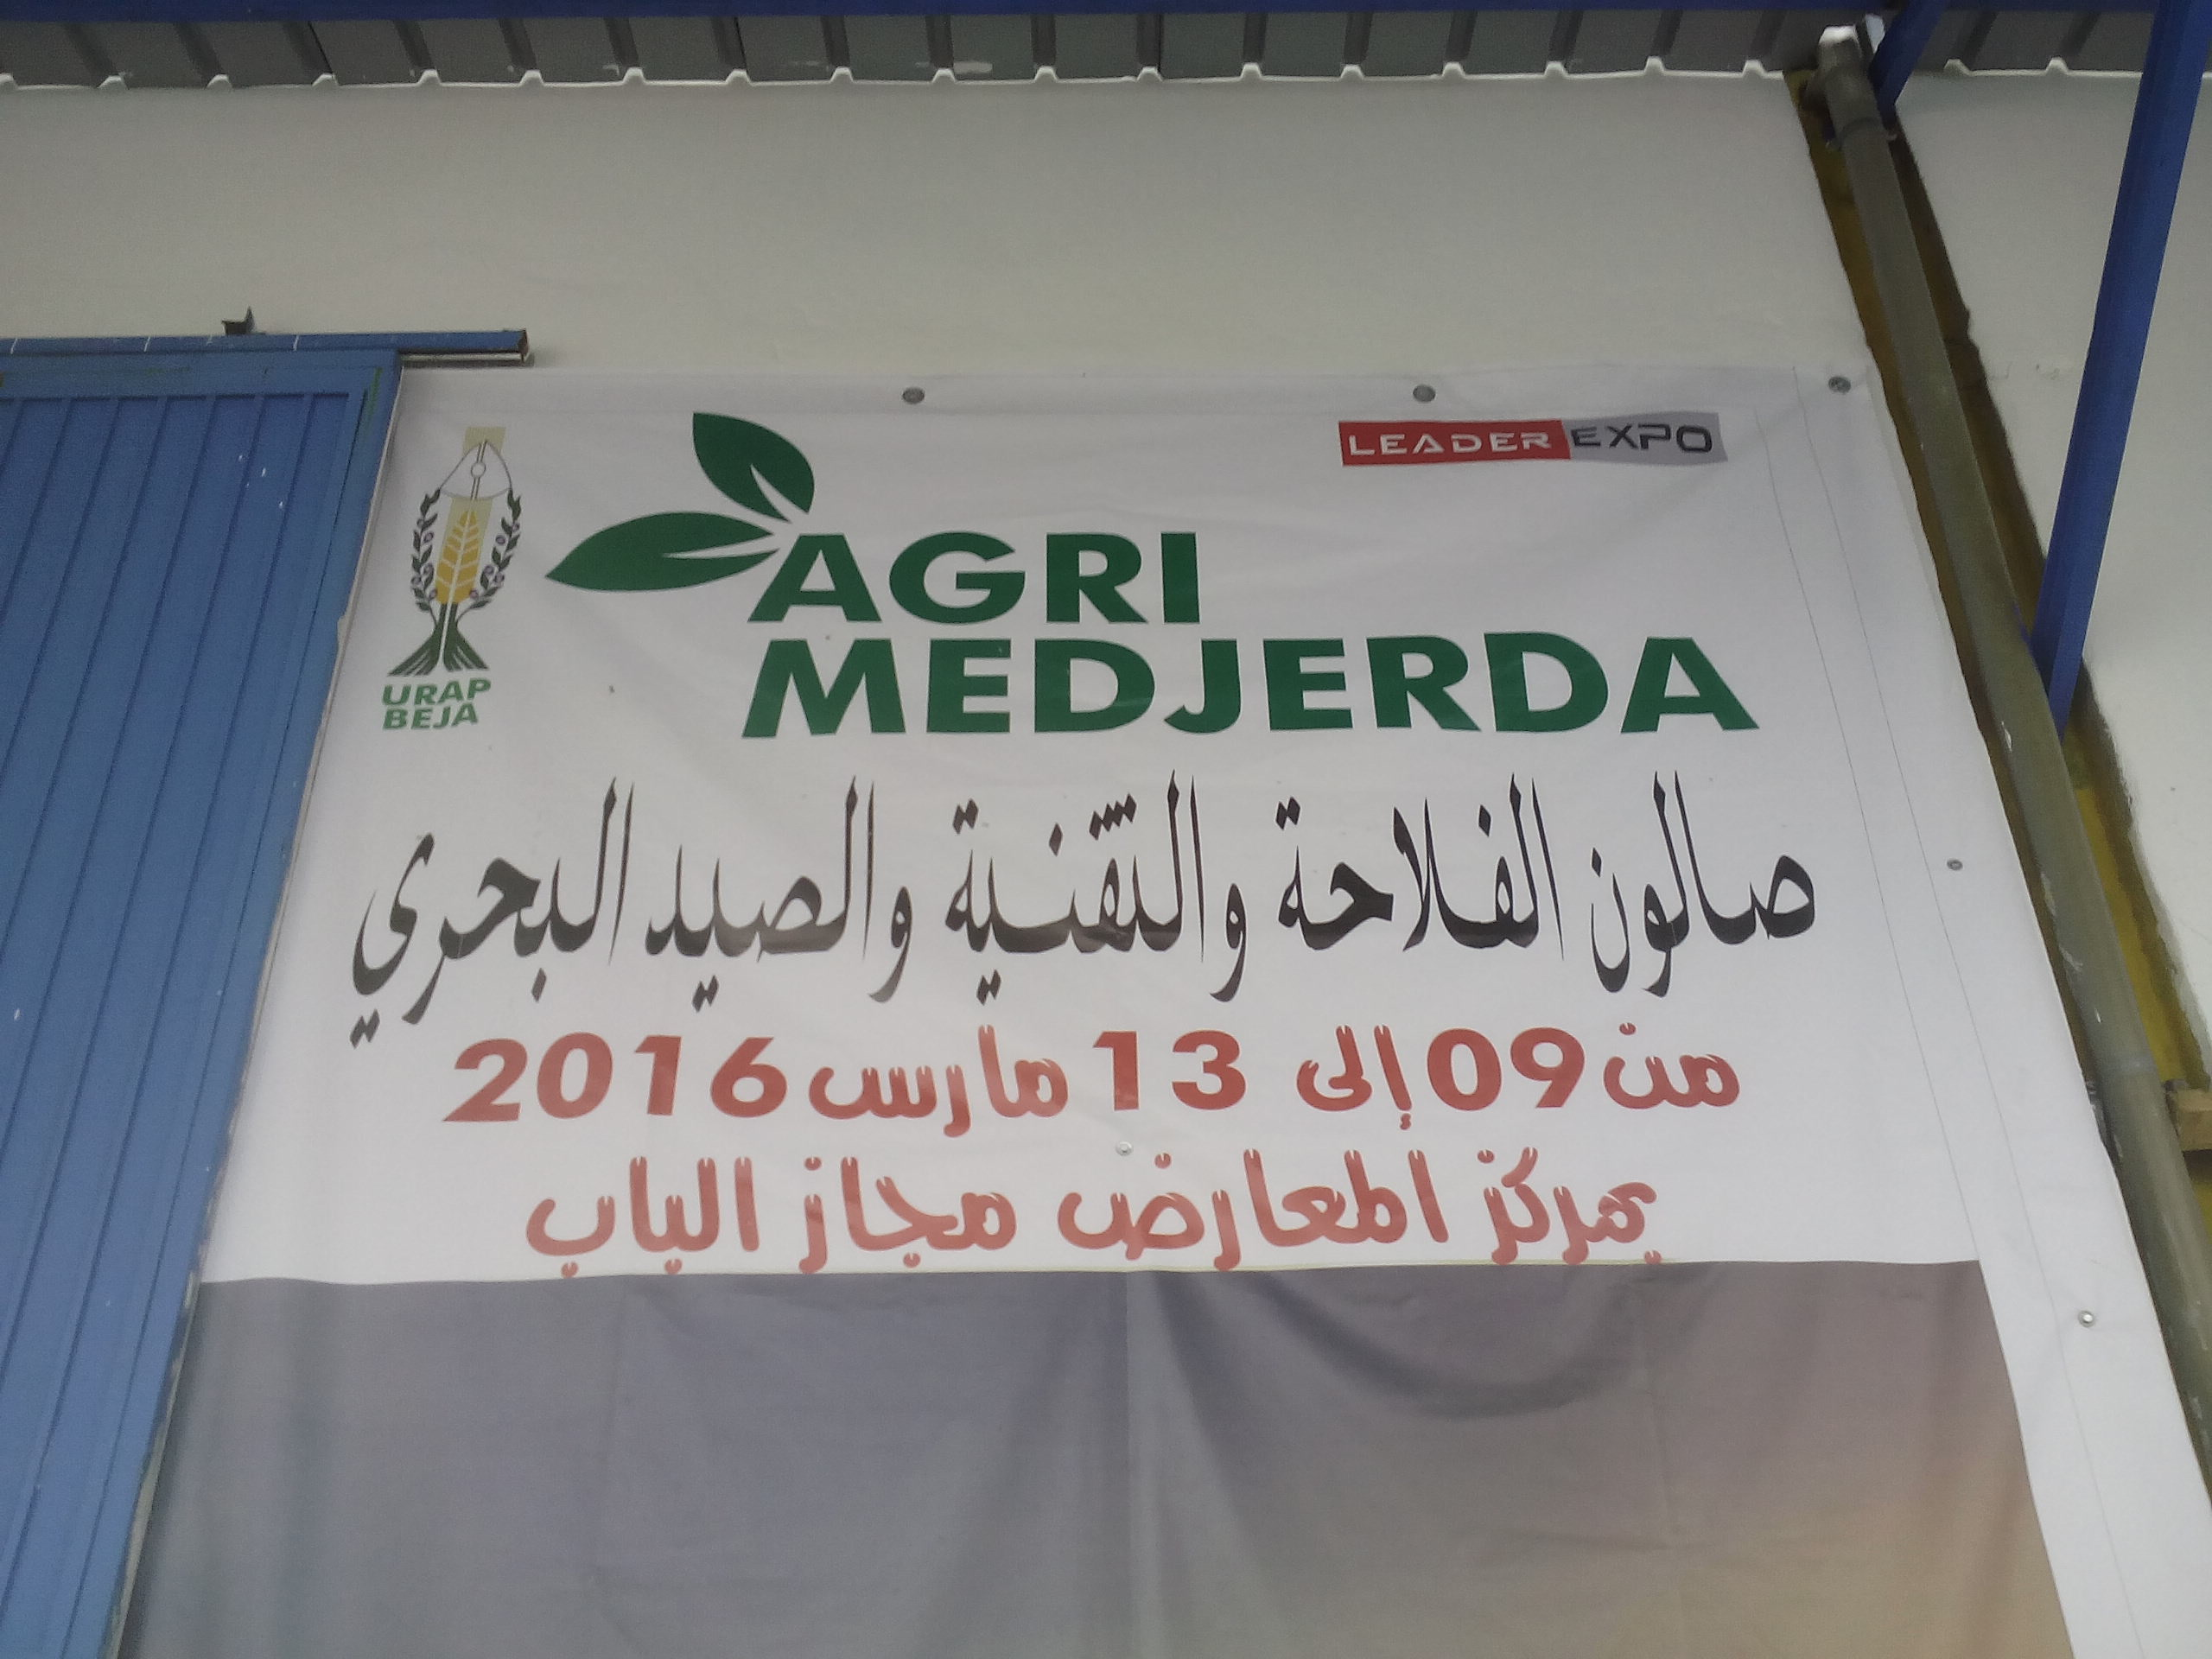 Participation in AGRI MEDJERDA (09/03 to 13/03/2016)